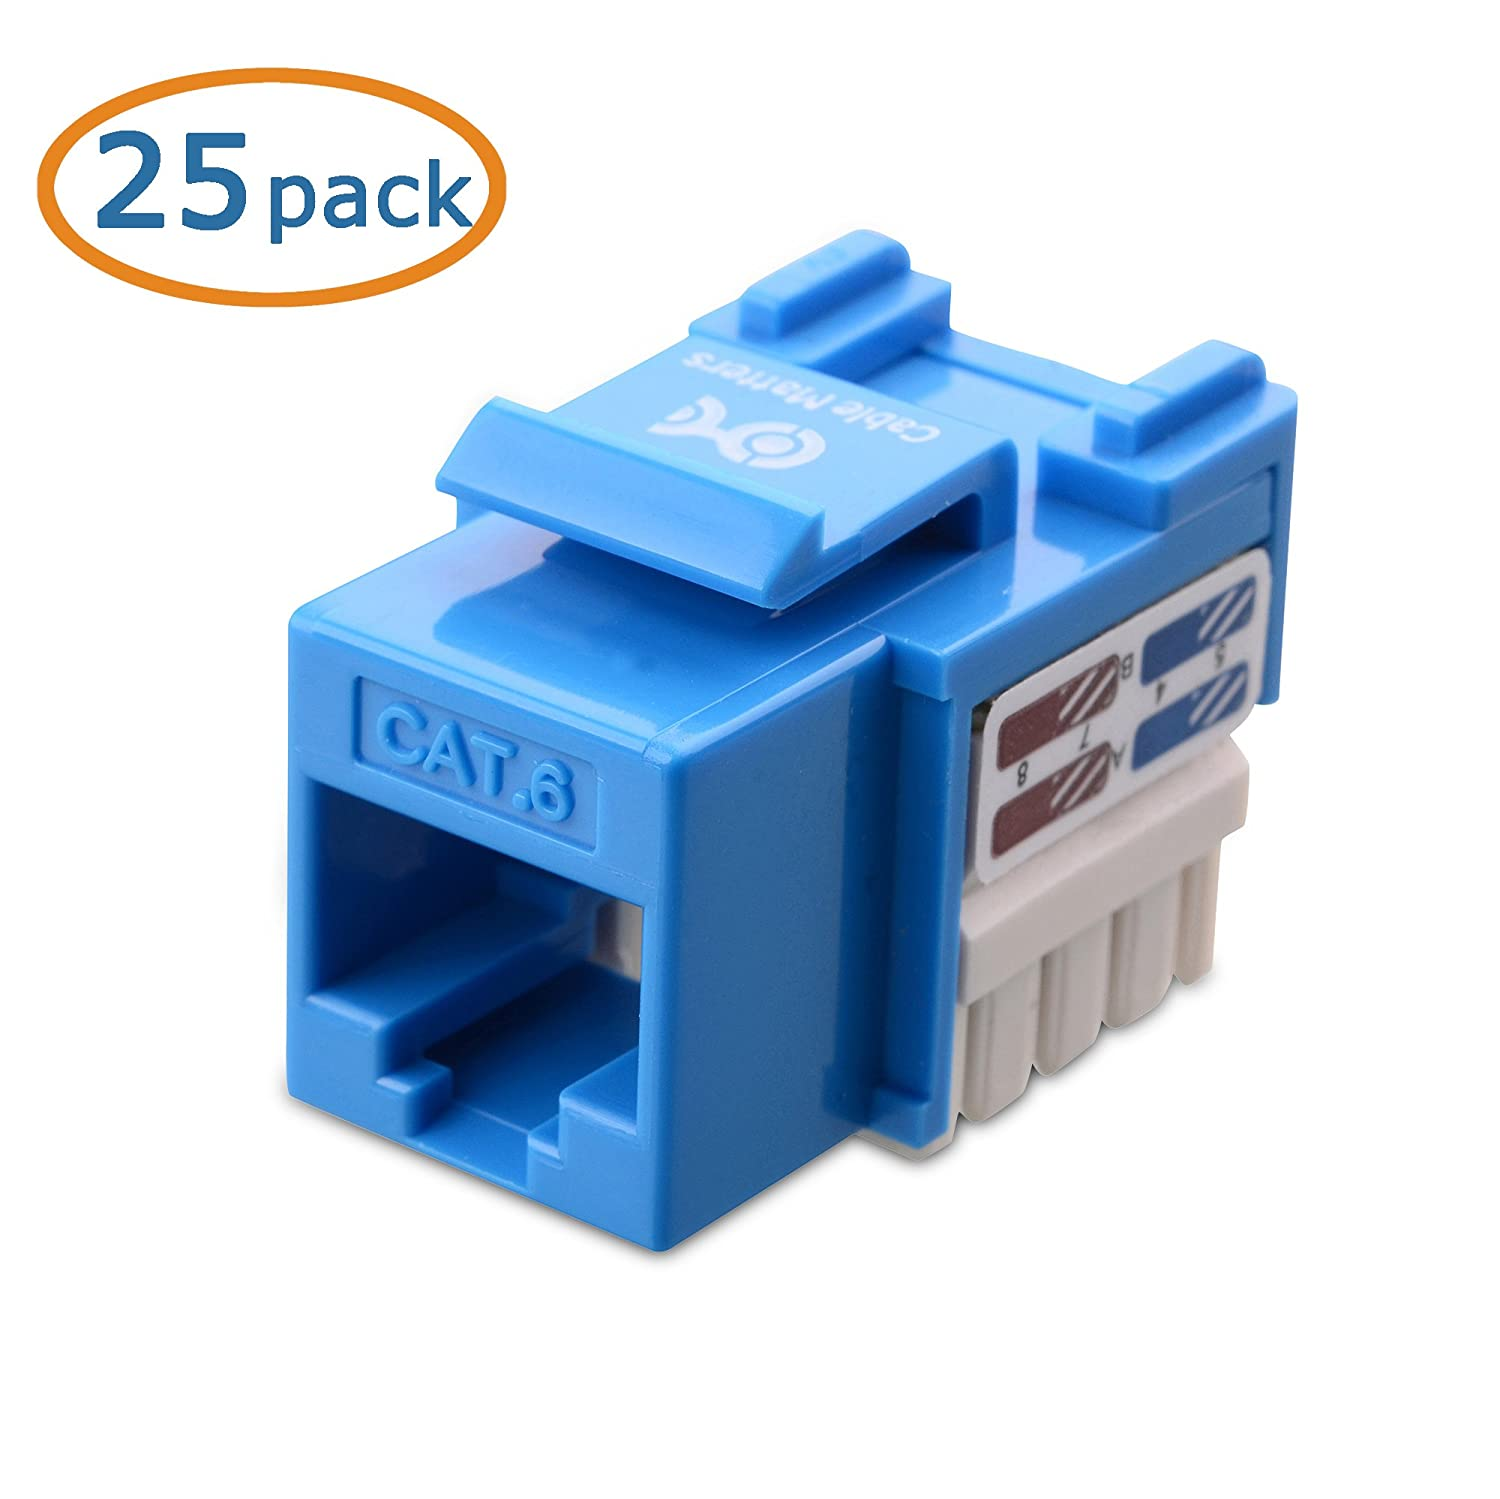 Cable Matters 25 Pack Cat6 Rj45 Keystone Jack In Blue And Cat5e Wire Diagram Punch Down Stand Computers Tablets